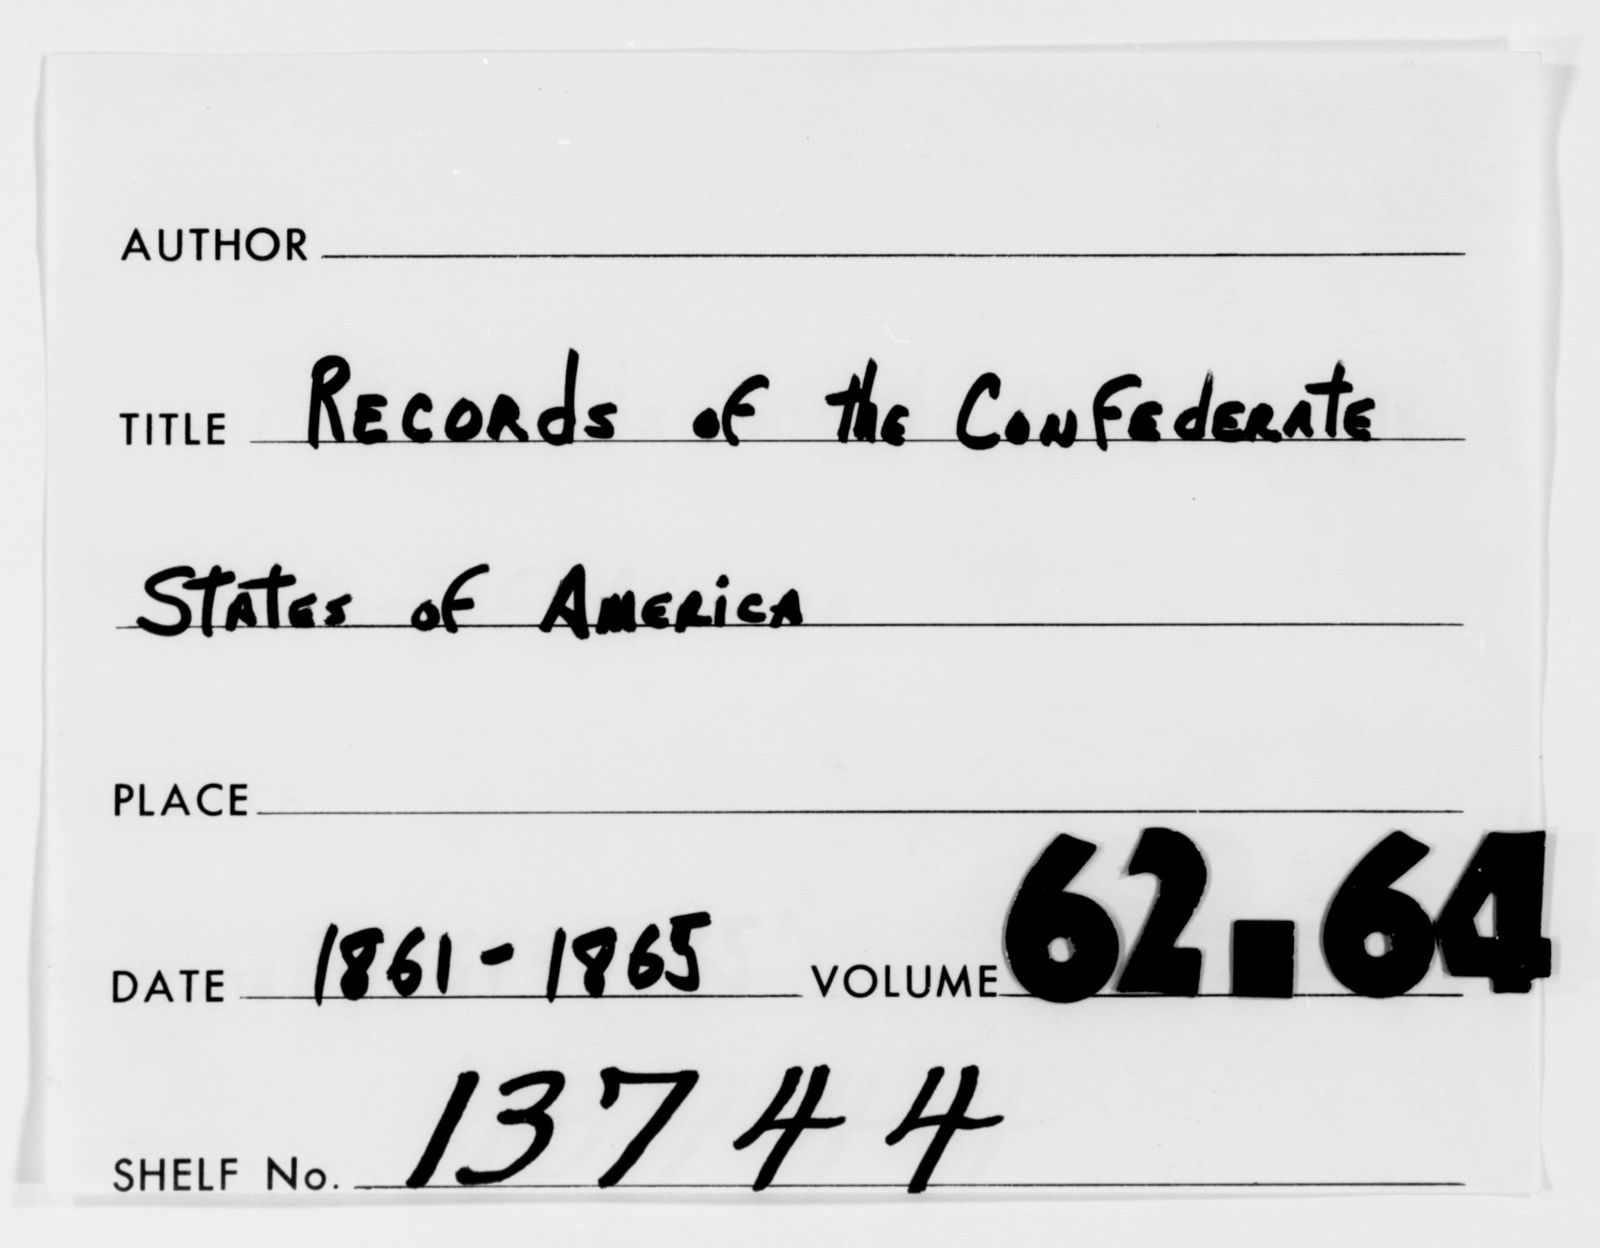 Confederate States of America records: Microfilm Reel 34